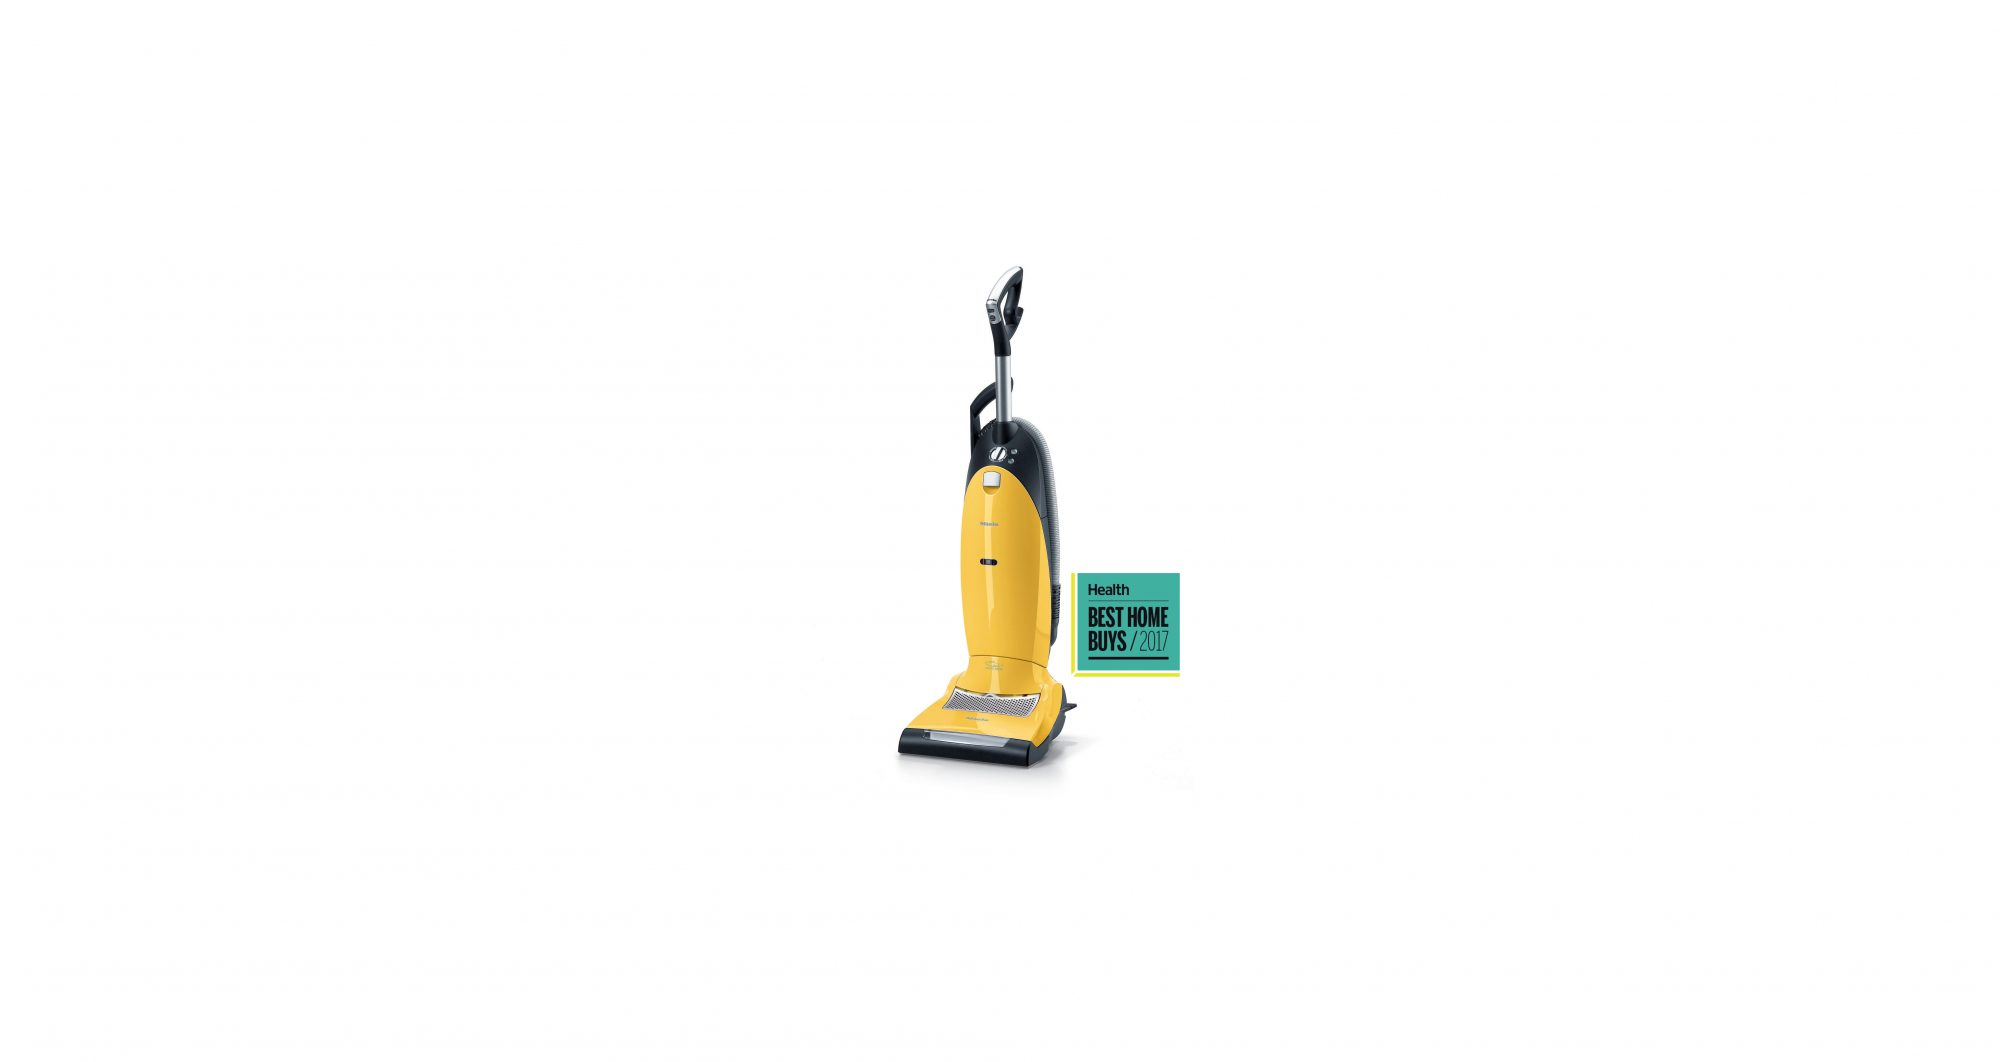 healthy-home-breathe-miele-dynamic-vacuum